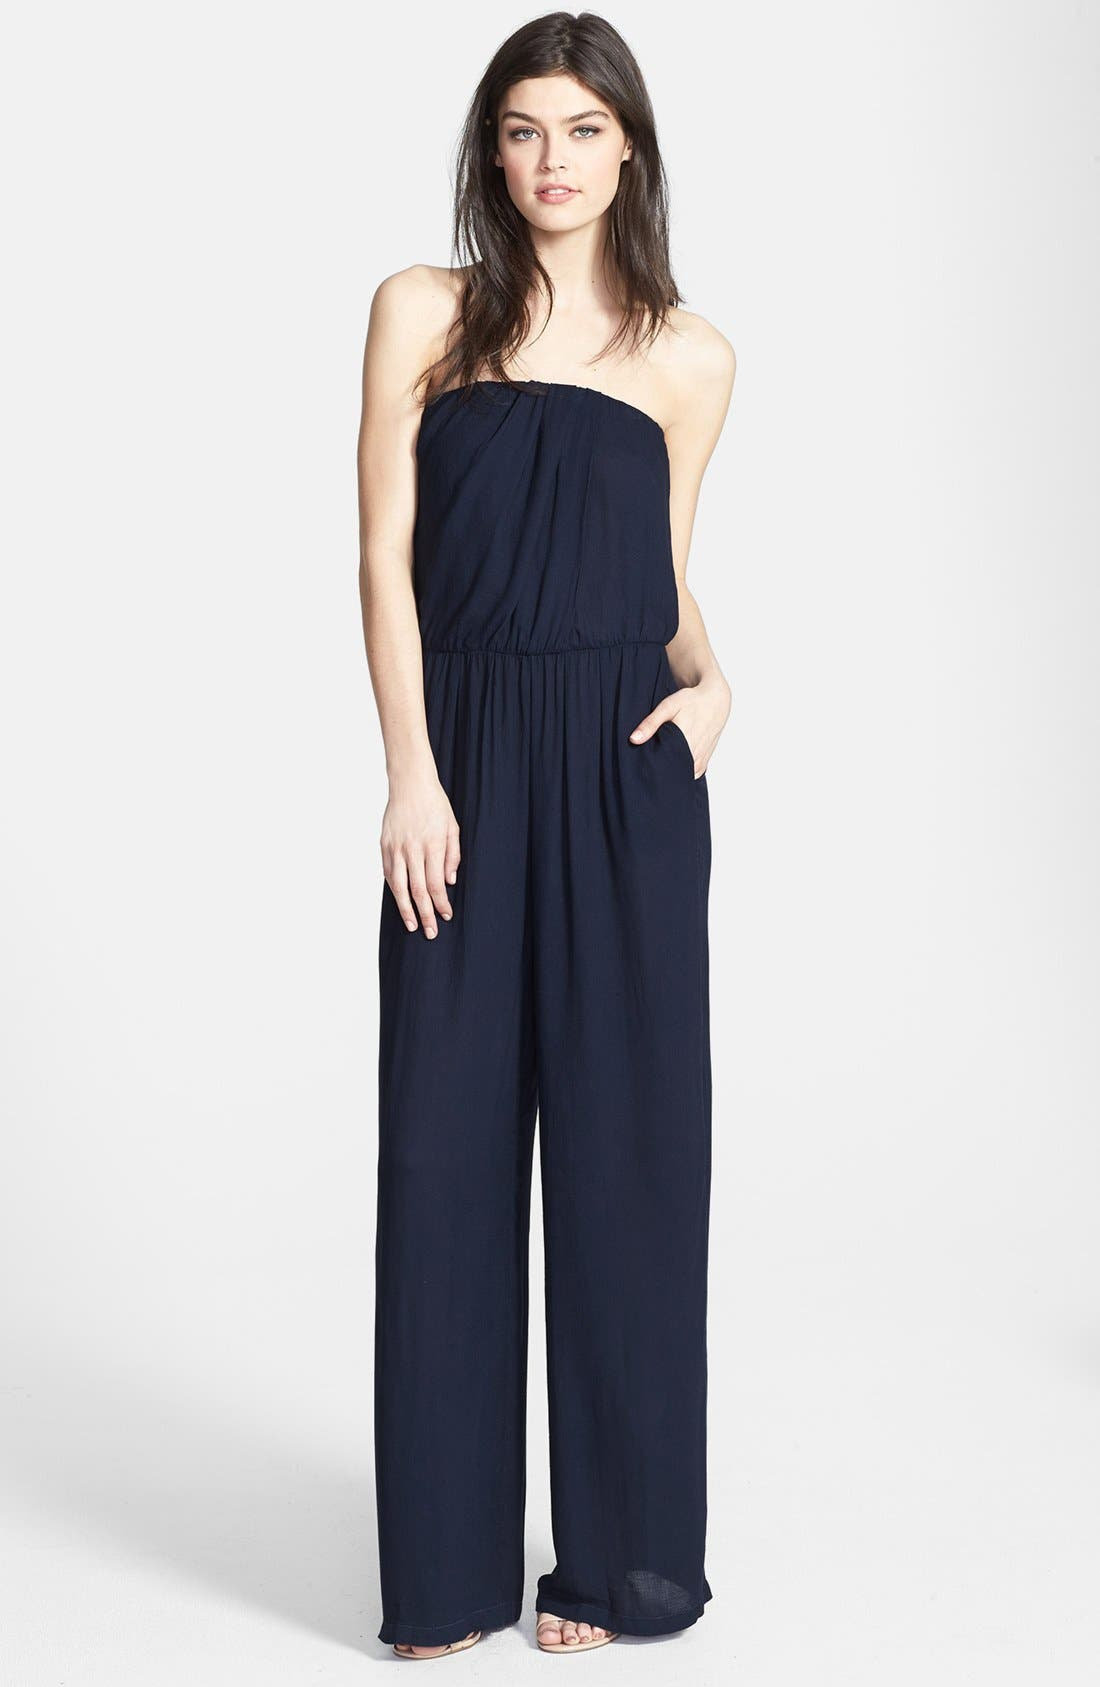 Main Image - Young, Fabulous & Broke 'Arie' Strapless Jumpsuit